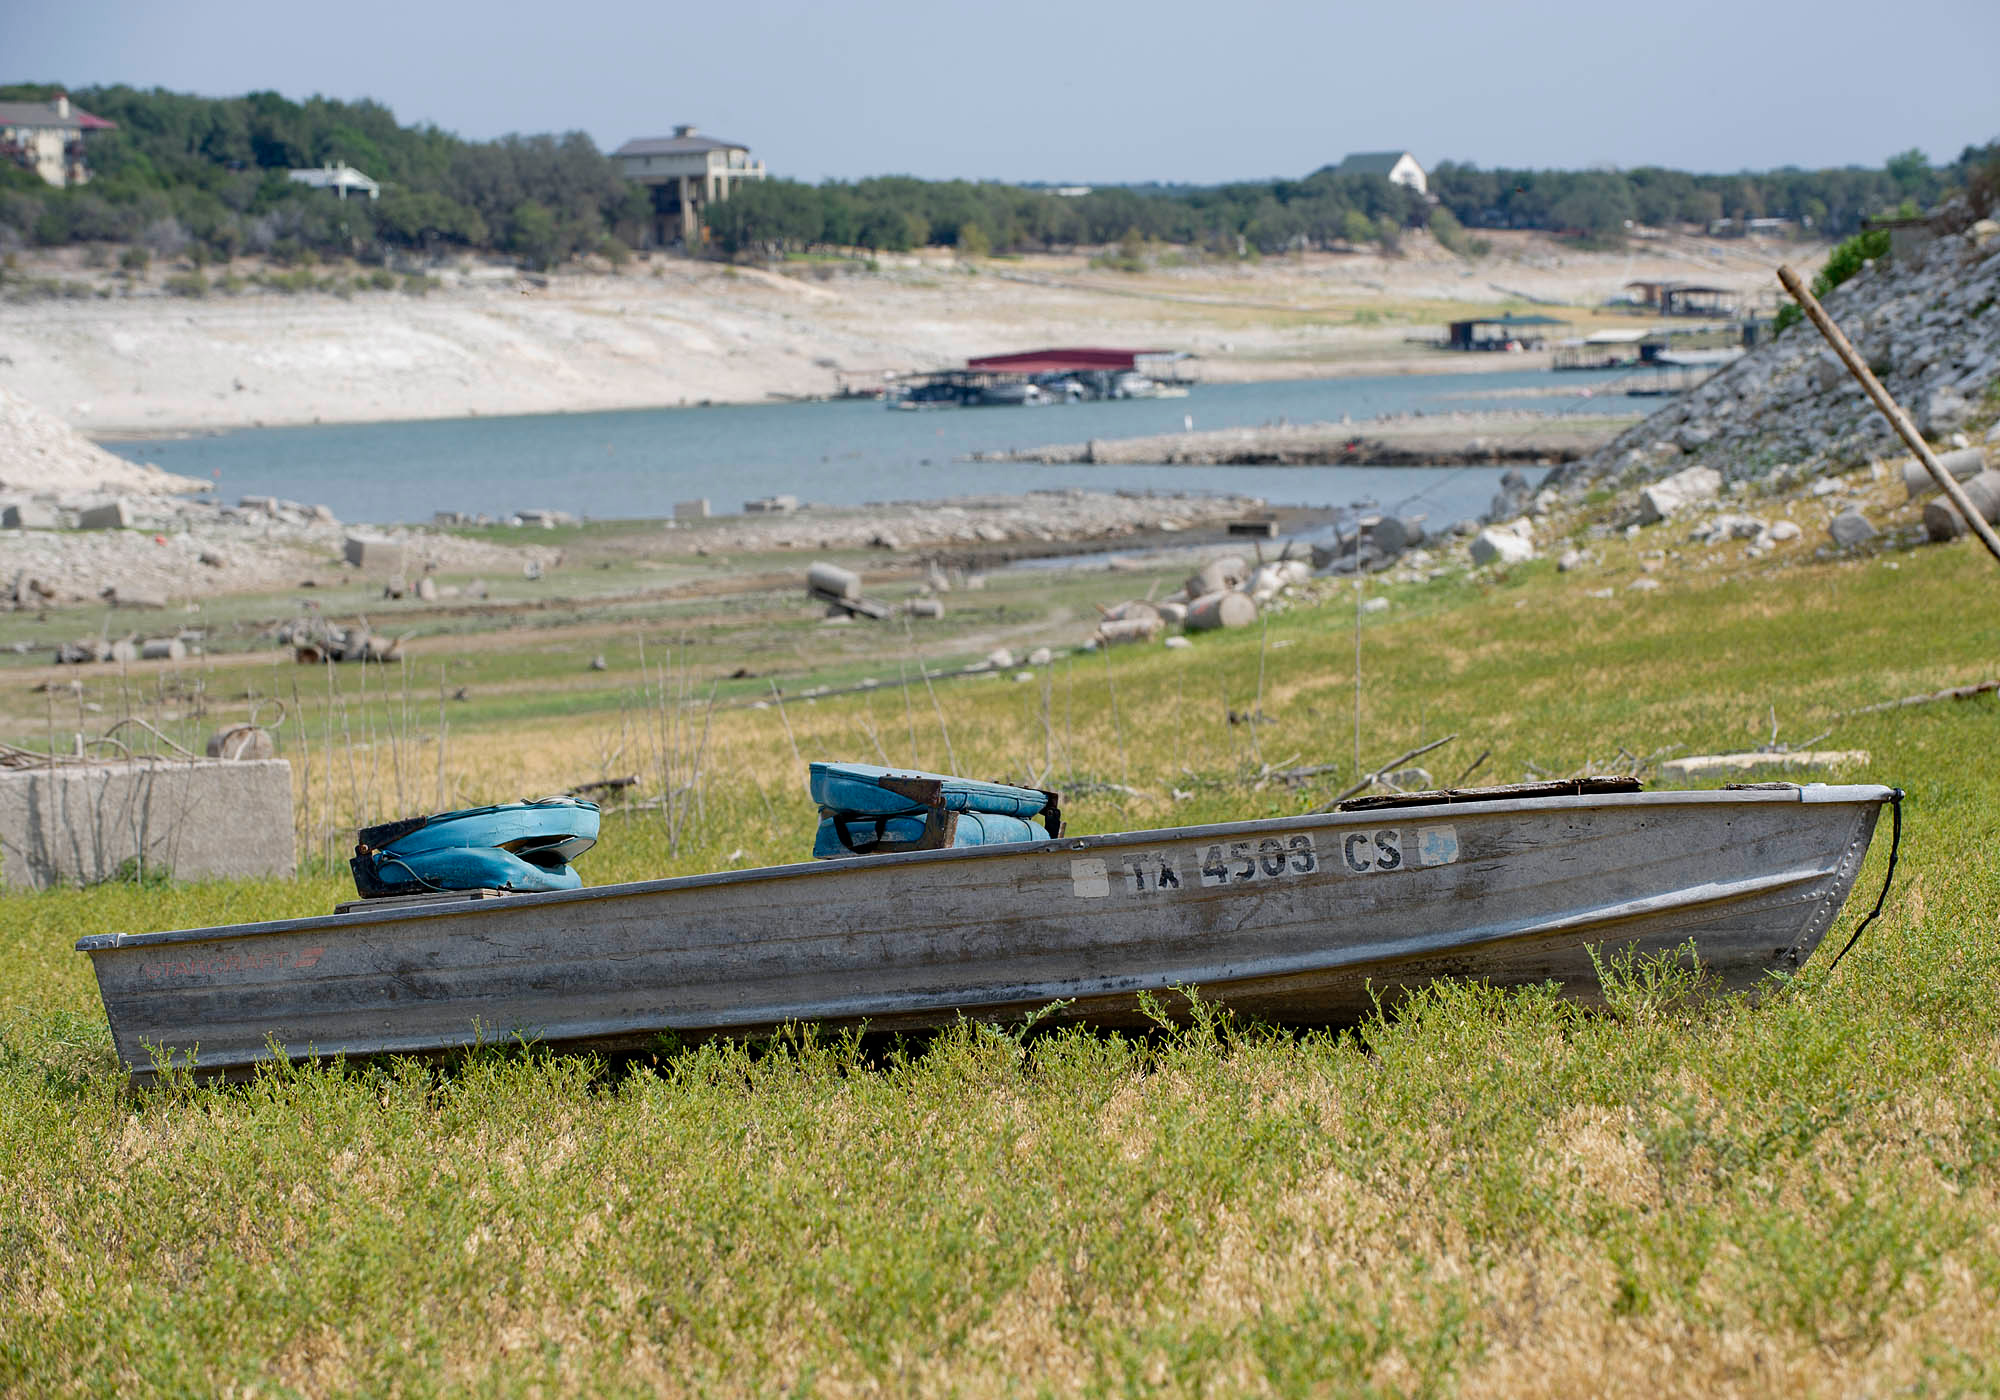 Photo of the dry basin of Lake Travis, near Austin. While there is some water in the bottom of the lake, the picture focuses on a boat that is grounded on a grassy plain.